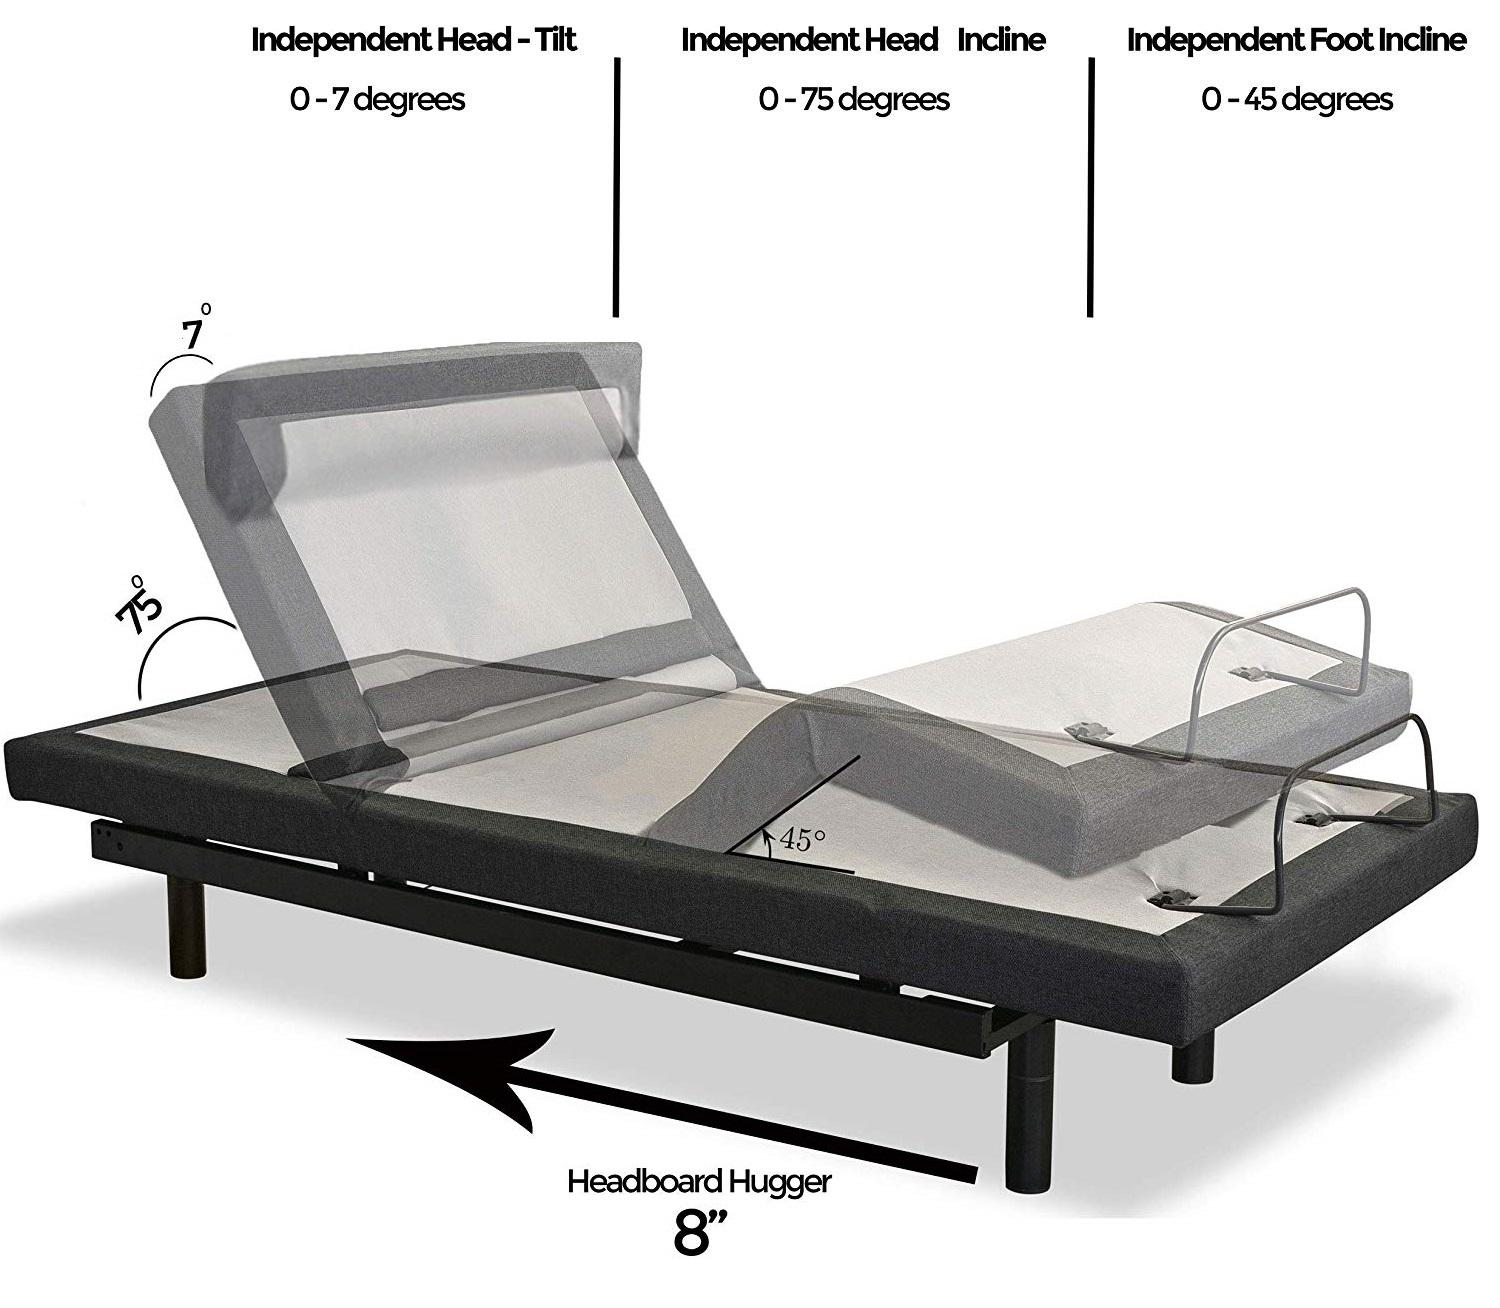 Sven & Son Adjustable Bed Reviews - Pillow tilting and Lumbar support